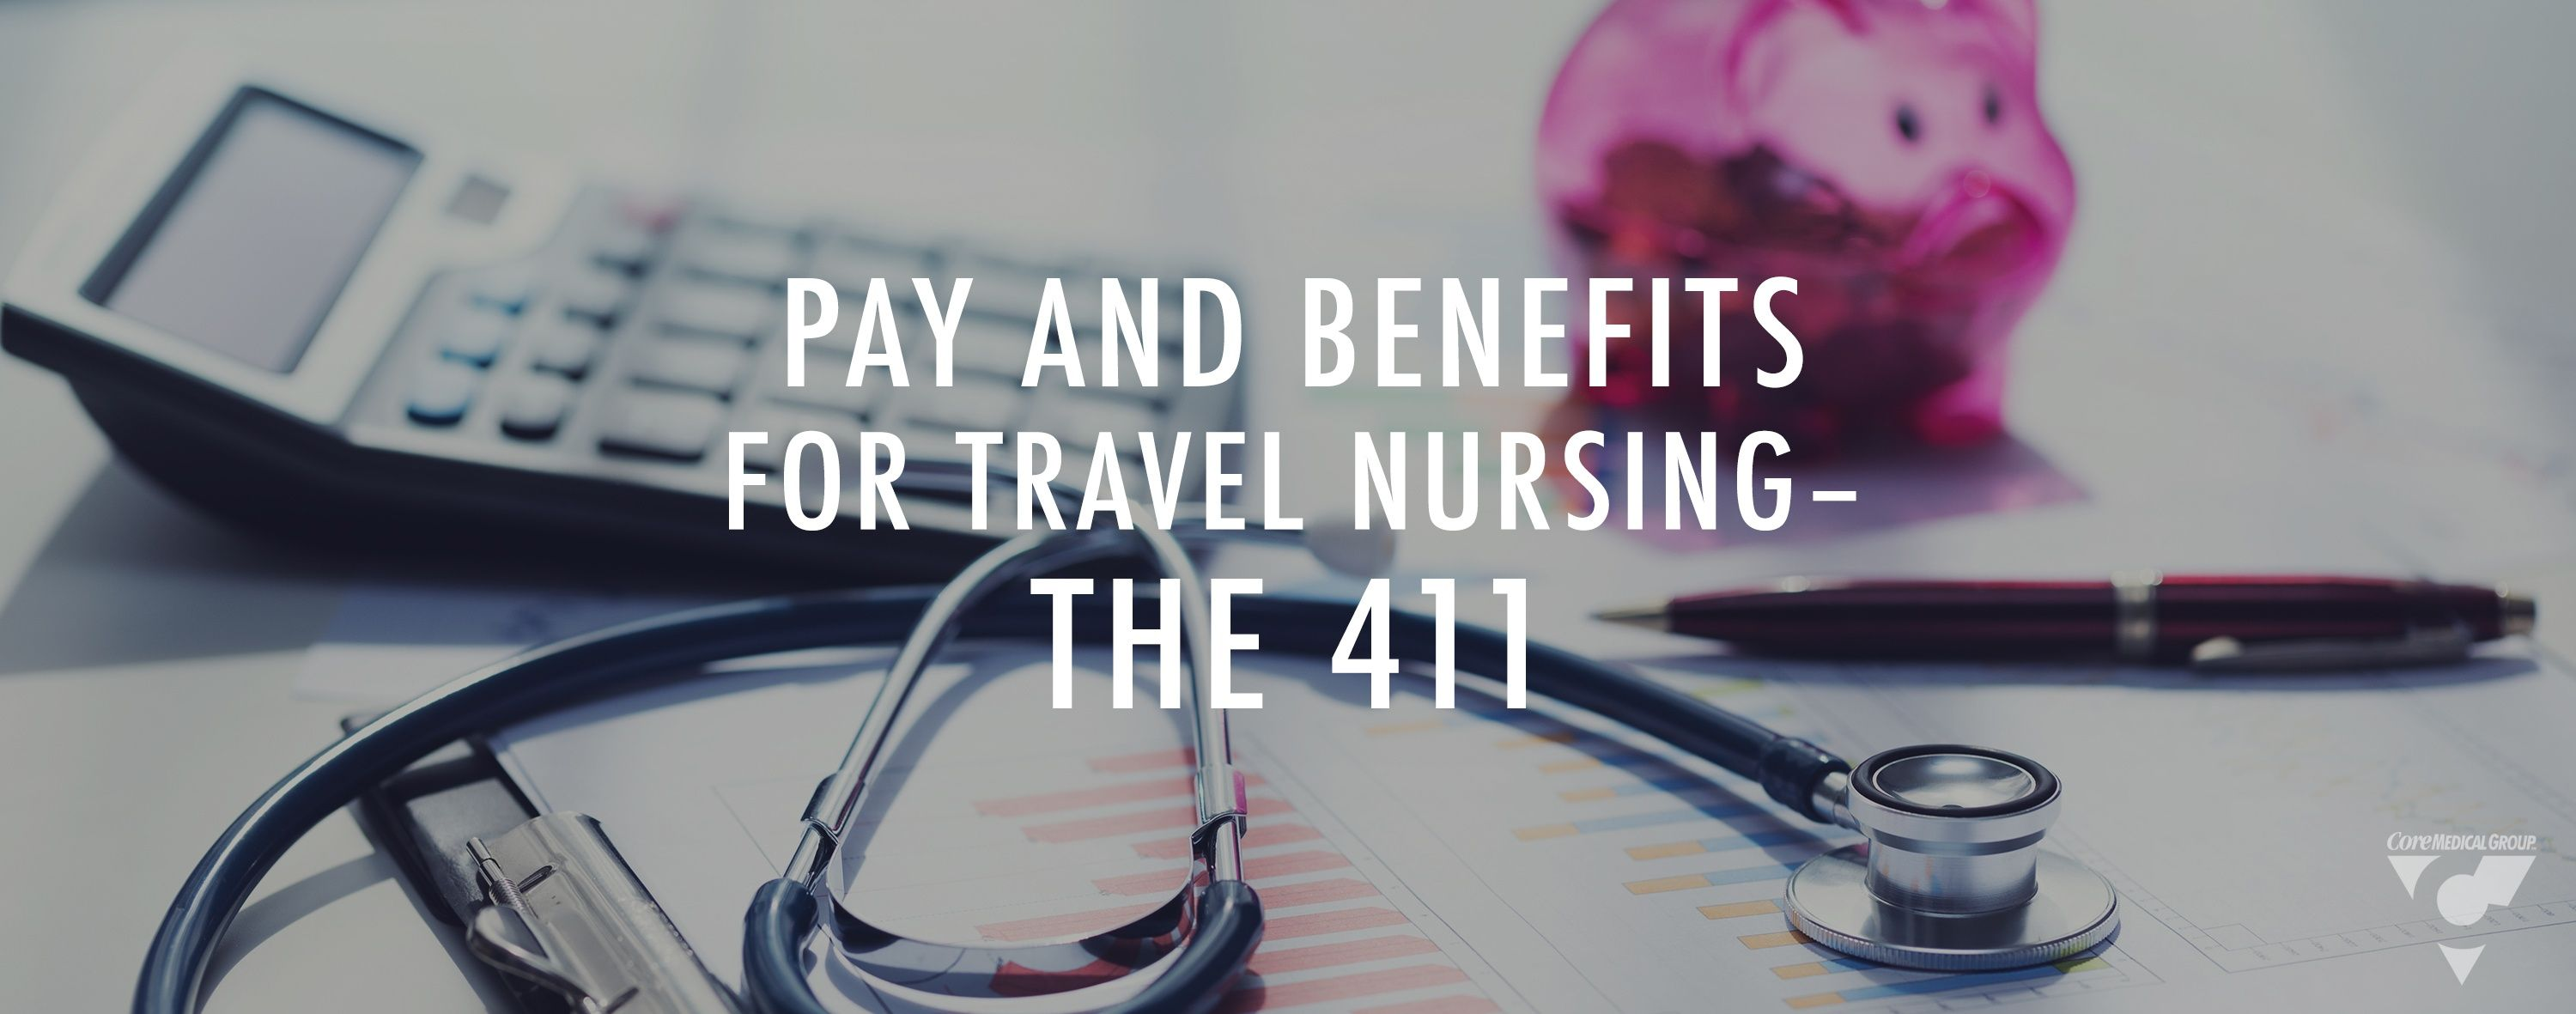 Chapter Seven Pay and Benefits for Travel Nursing The